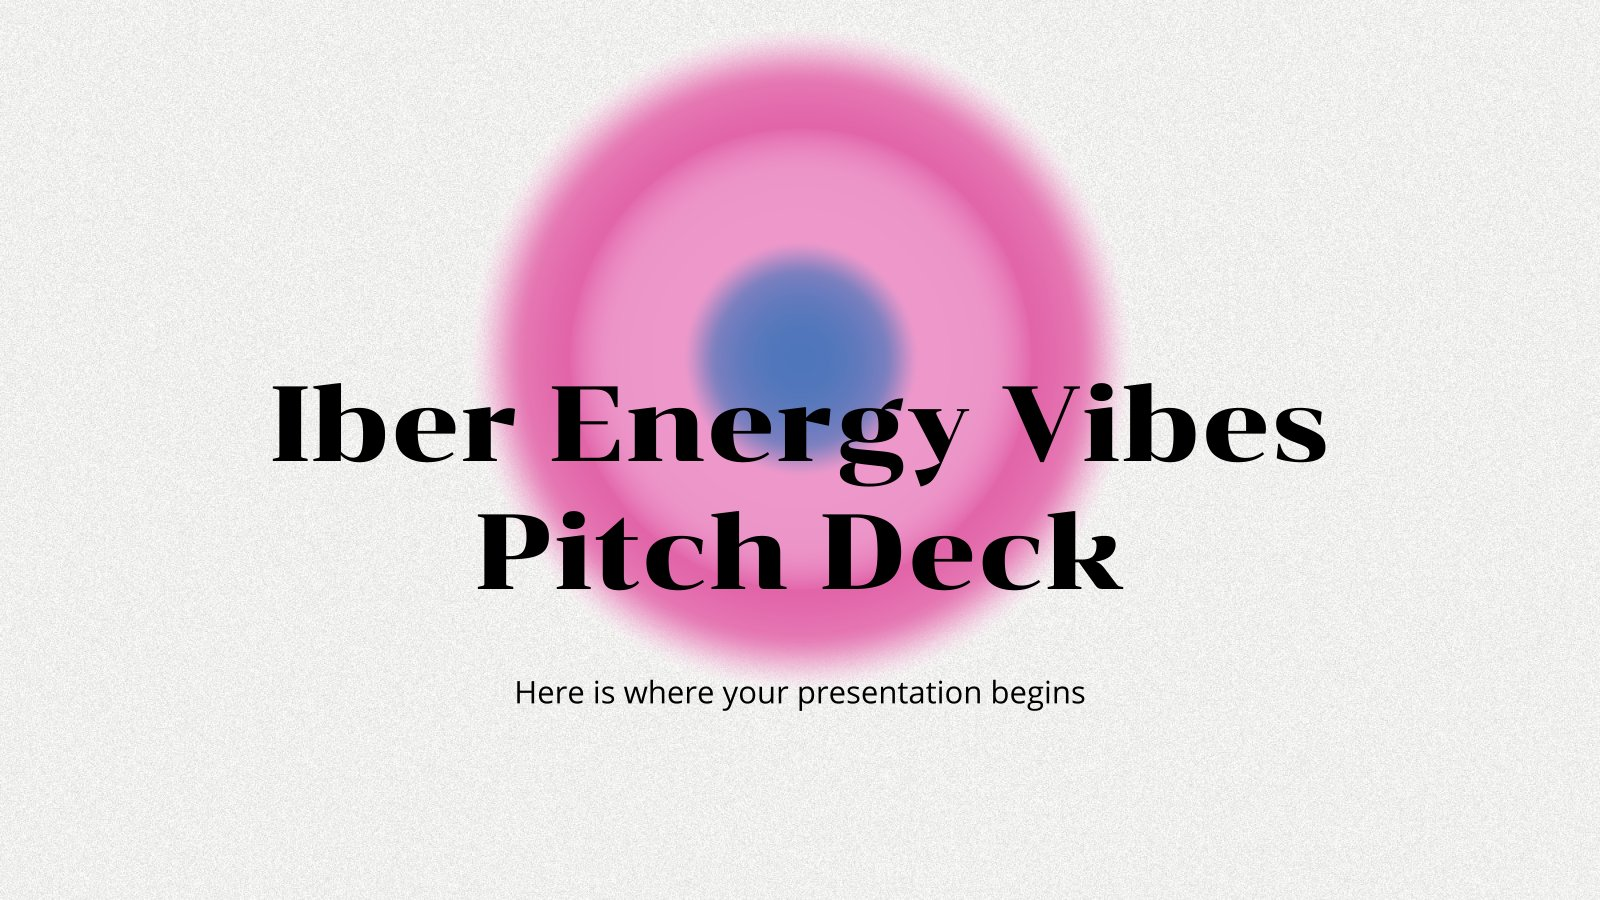 Iber Energy Vibes Pitch Deck presentation template